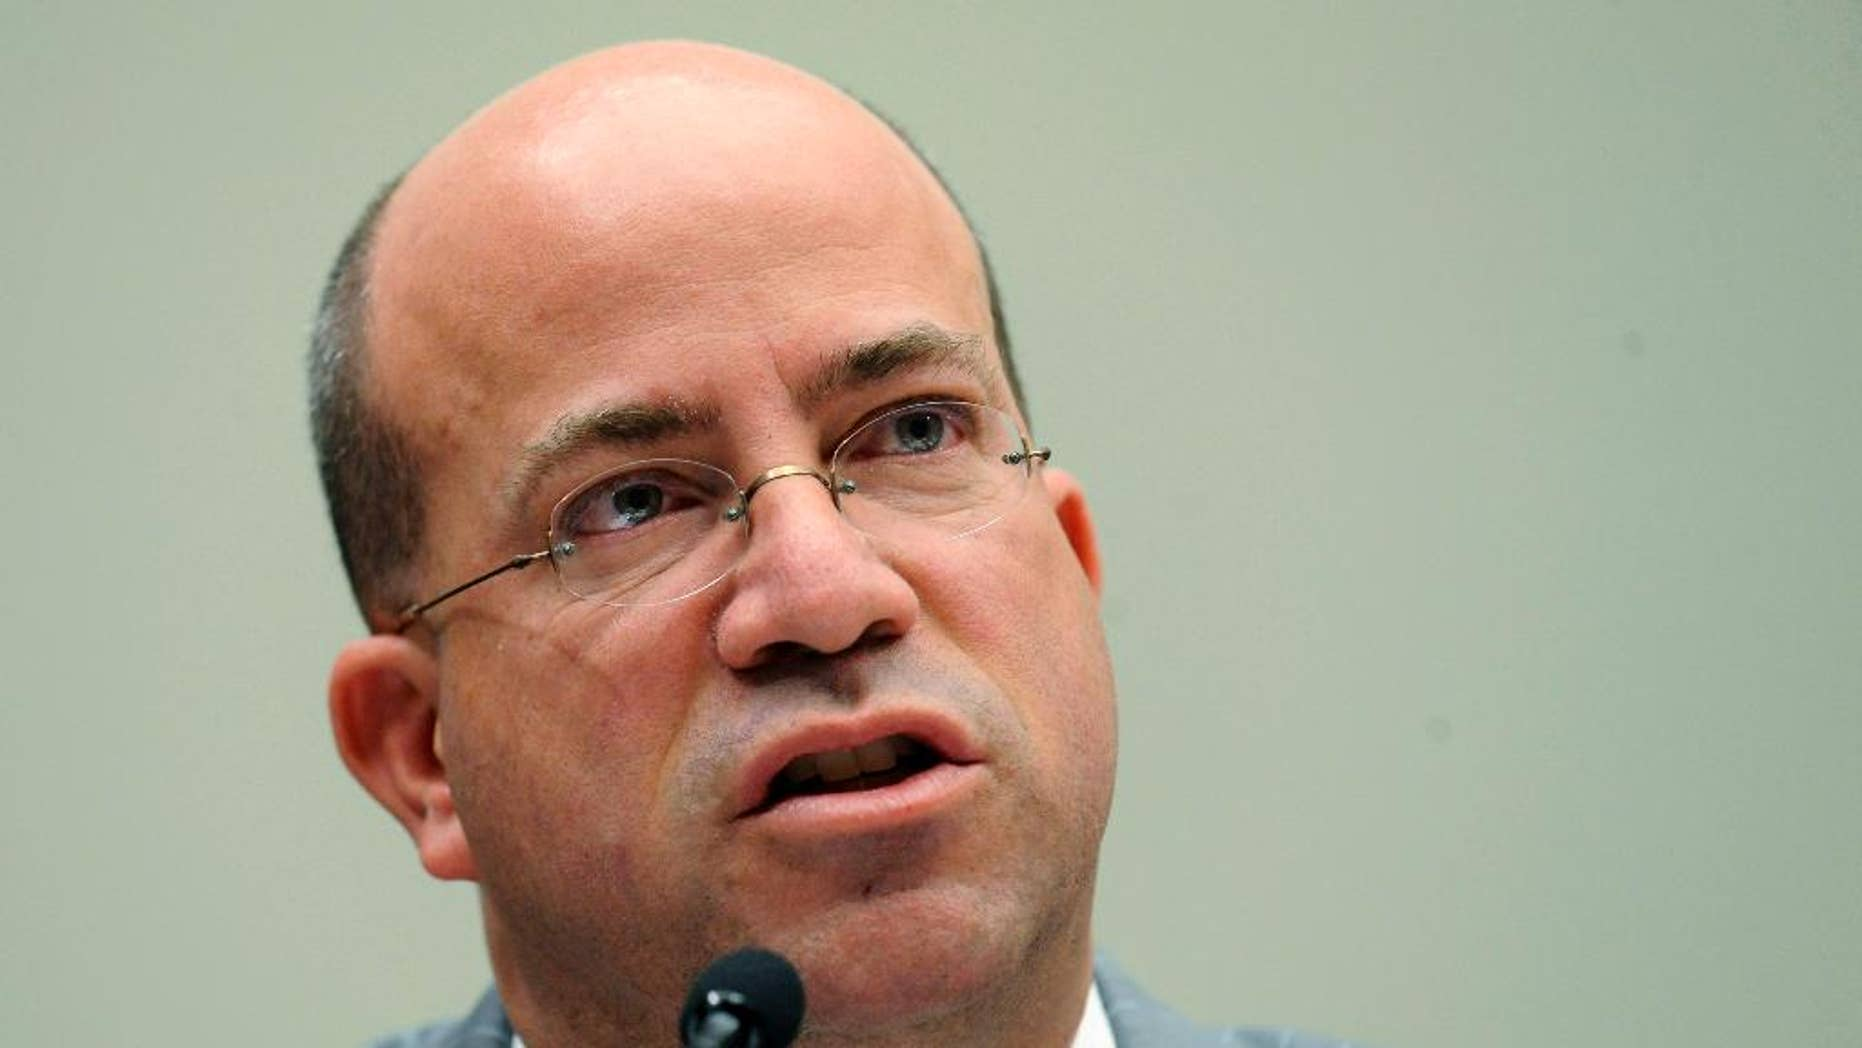 """FILE - In this Thursday, Feb. 25, 2010 file photo, Jeff Zucker testifies on Capitol Hill in Washington, during the House Judiciary Committee hearing on competition in the media and entertainment distribution market. Zucker, the president of CNN says it is """"shocking"""" to watch the political establishment's silence regarding President Donald Trump's attacks on the media, calling it an abdication of their responsibility.  (AP Photo/Susan Walsh, File)"""